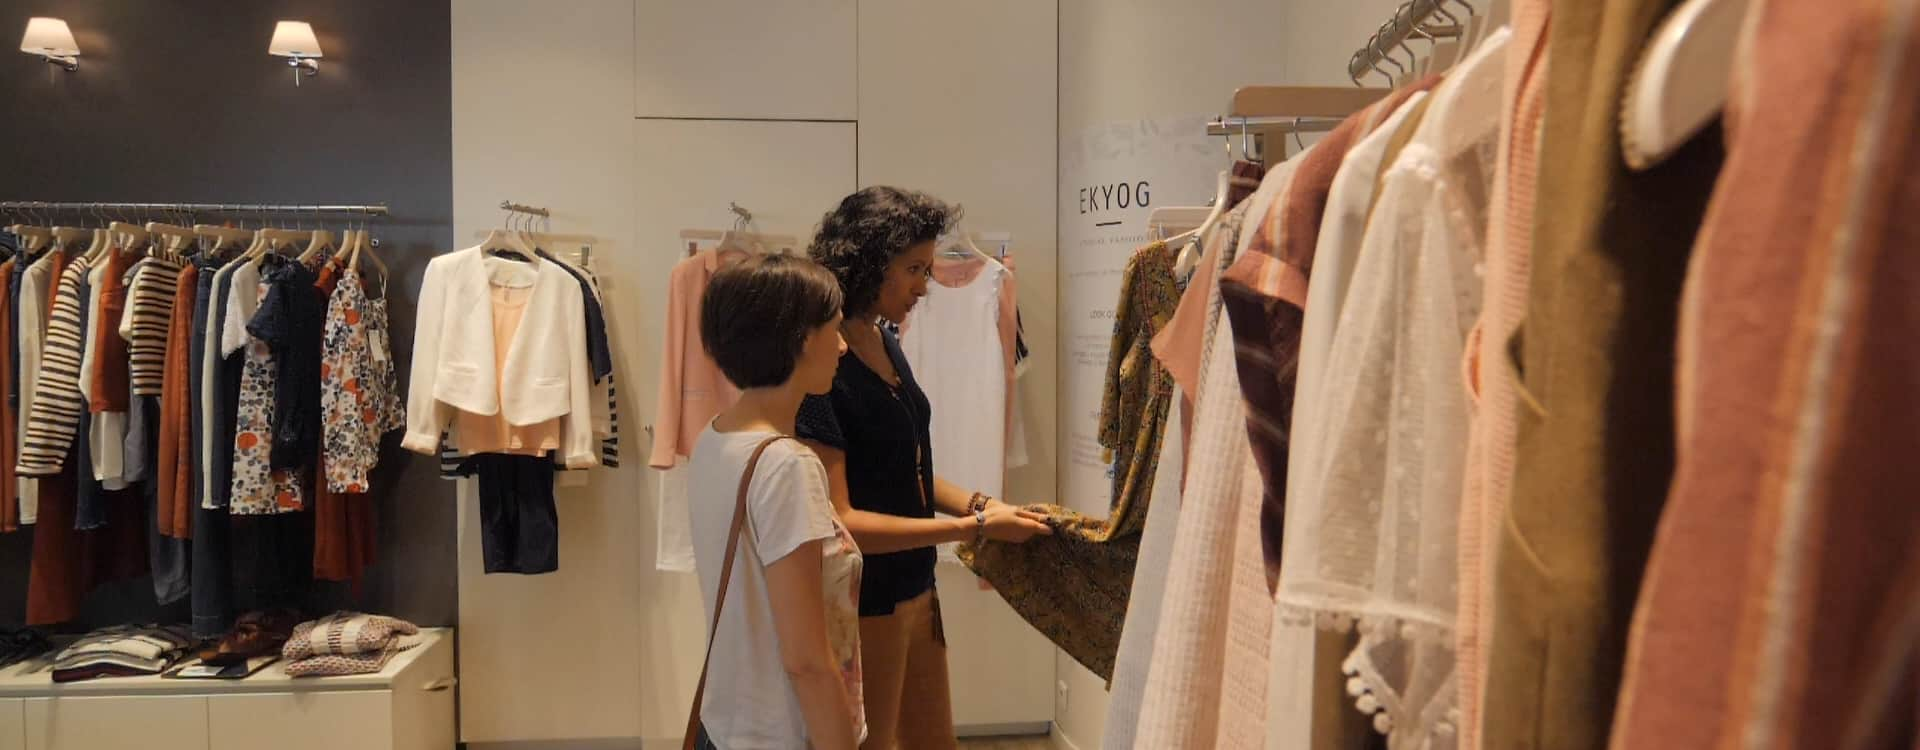 accompagnement shopping, accompagnement boutique, mode ethique